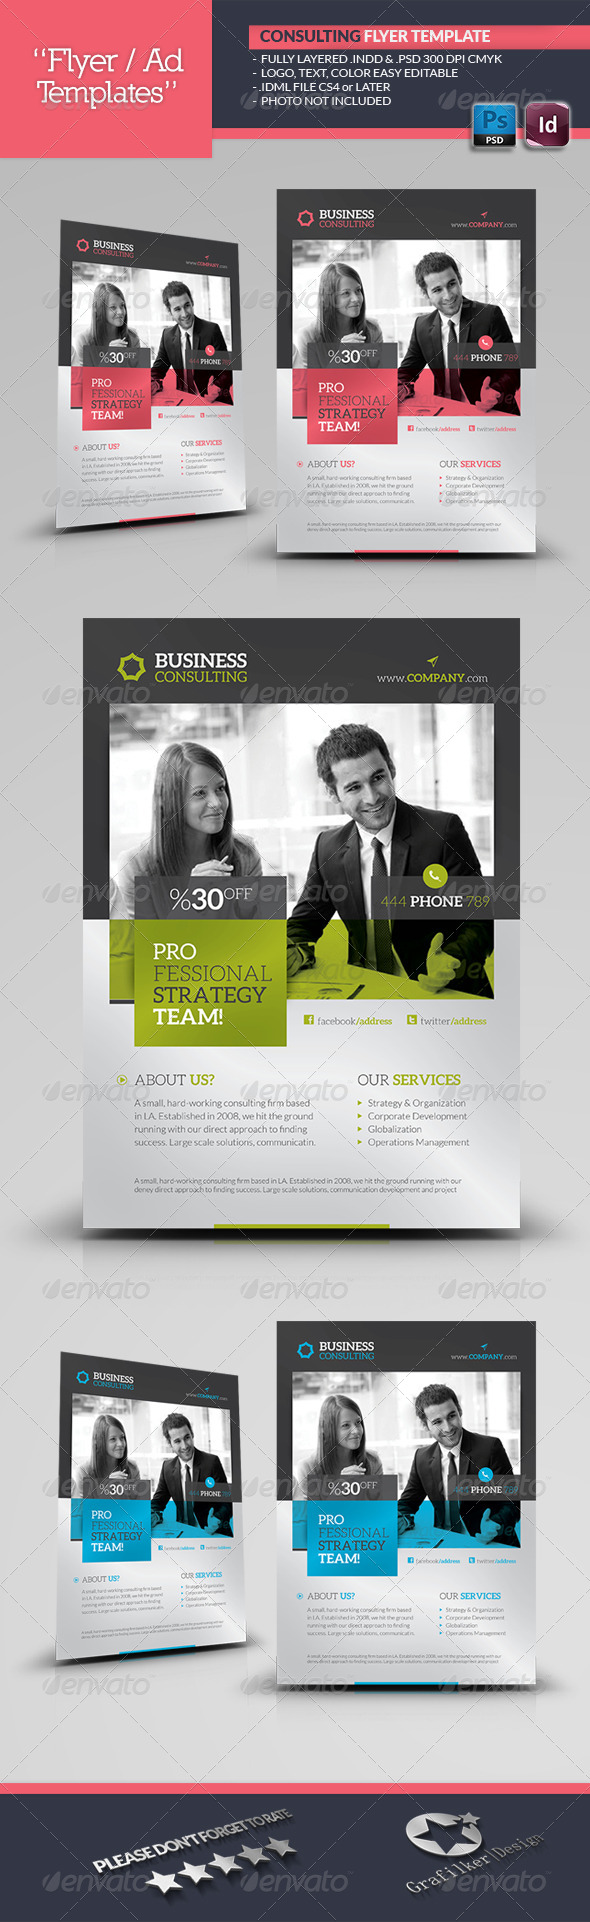 Business Consulting Flyer Template - Corporate Flyers